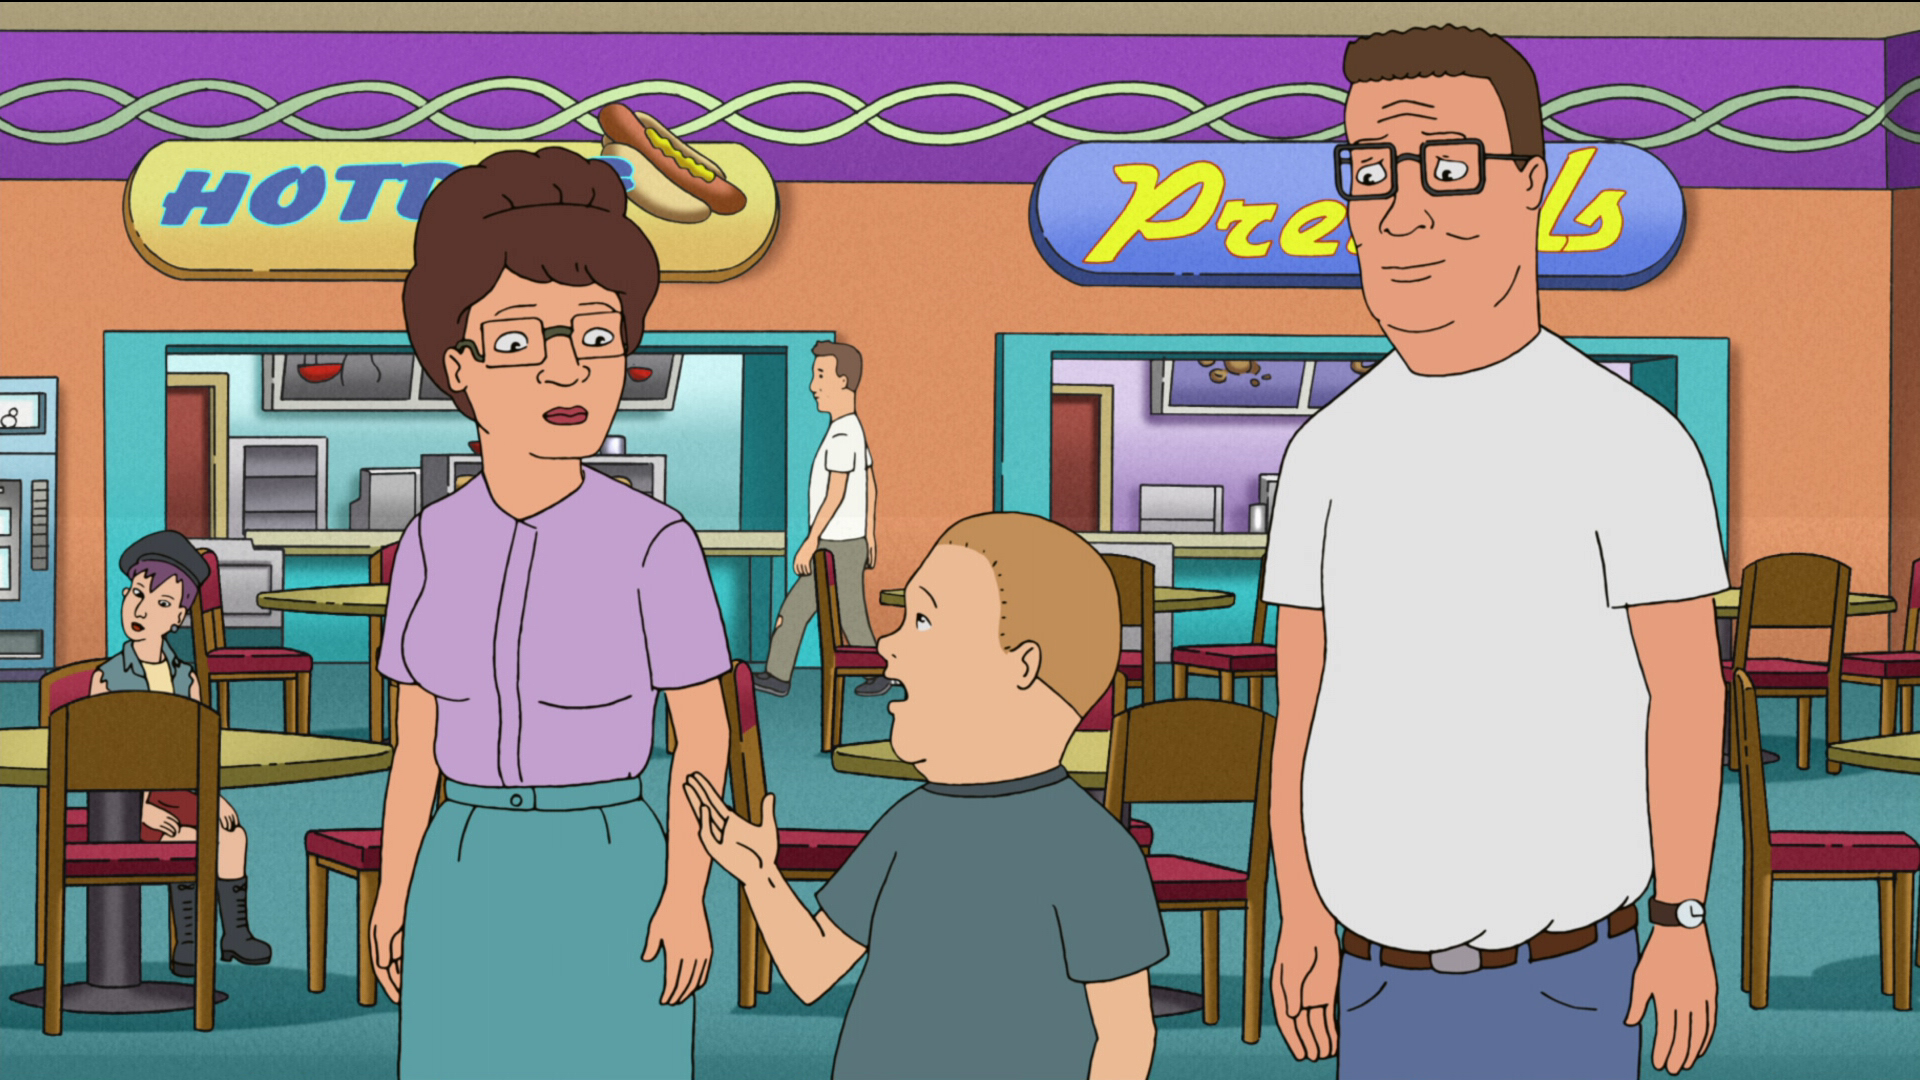 King of the Hill S13E10 BluRay REMUX 1080p AVC DTS-HD MA 5.1 - KRaLiMaRKo